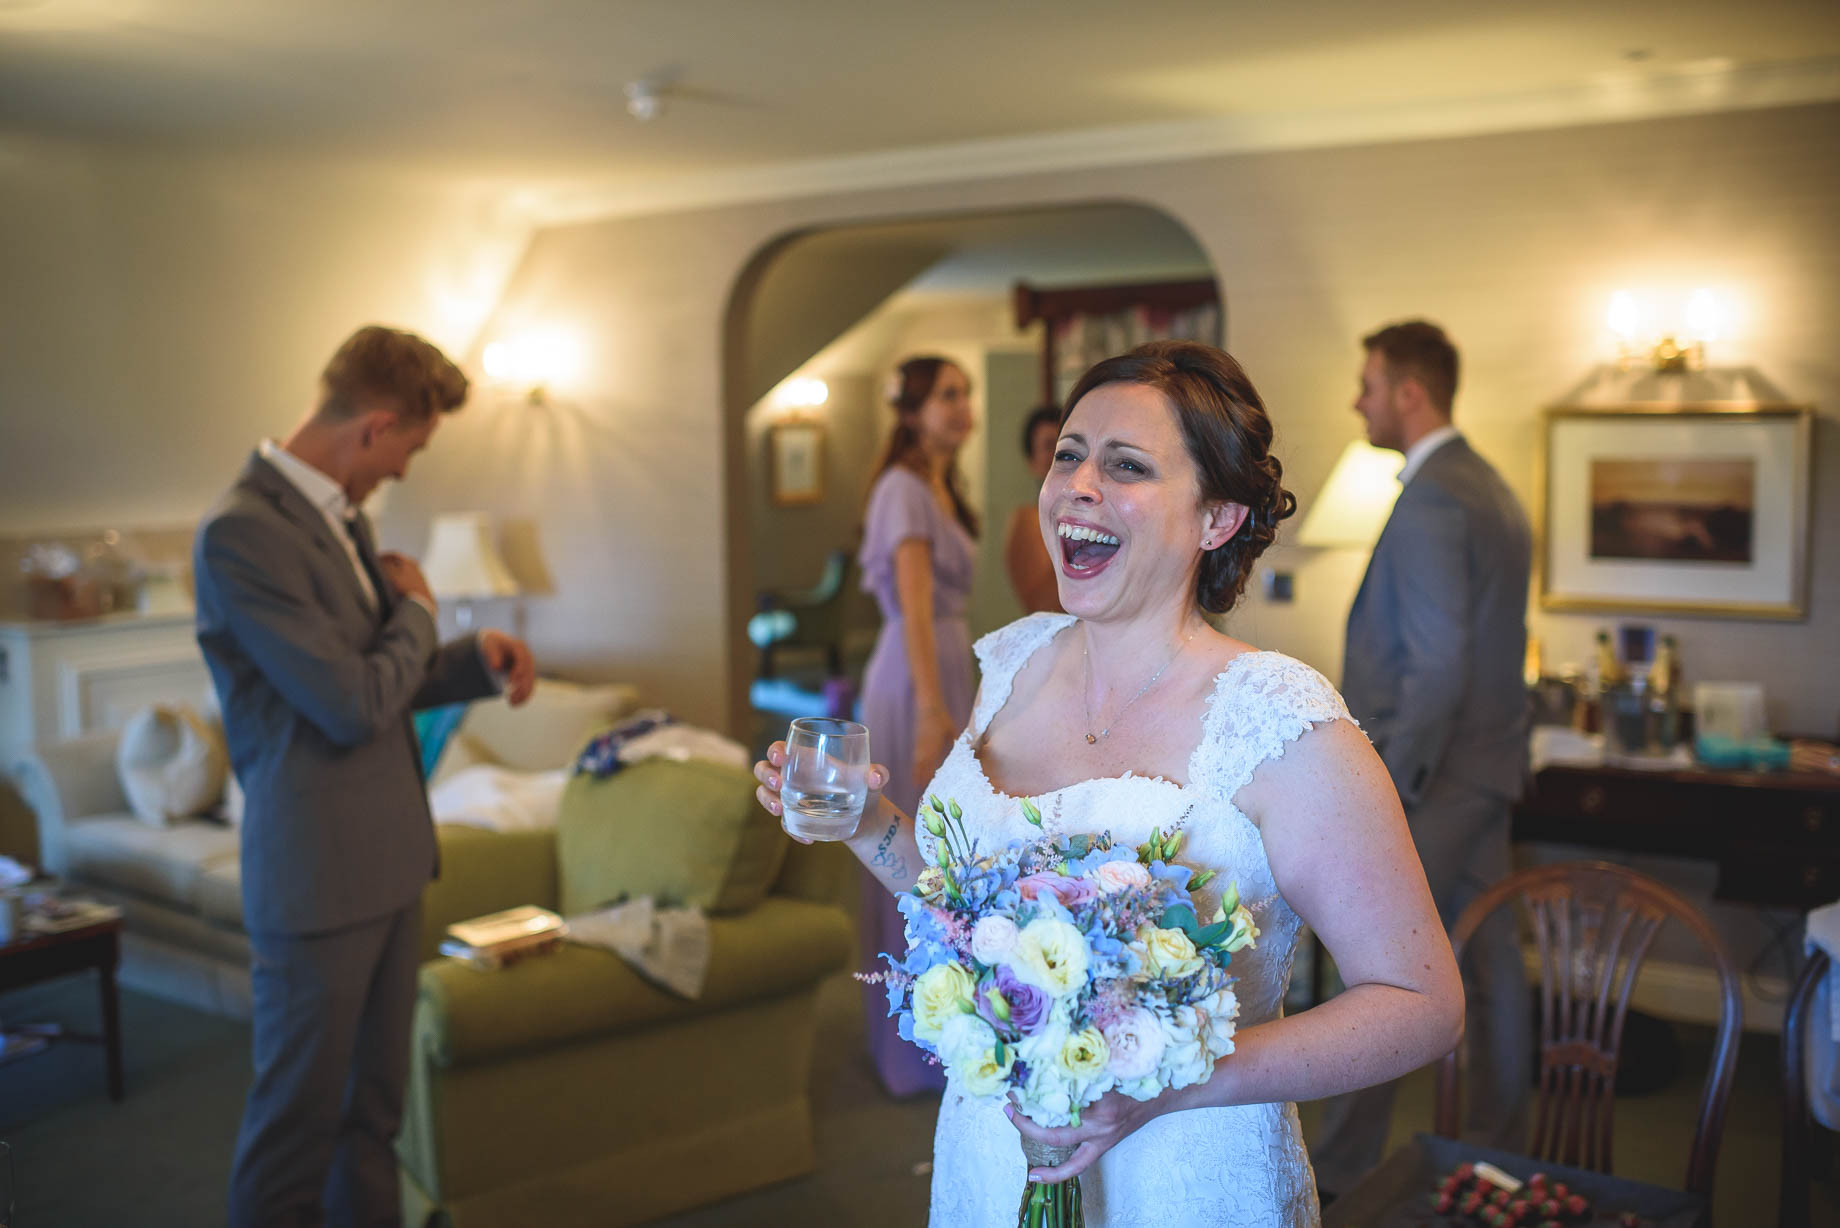 Luton Hoo wedding photography by Guy Collier Photography - Lauren and Gem (49 of 178)